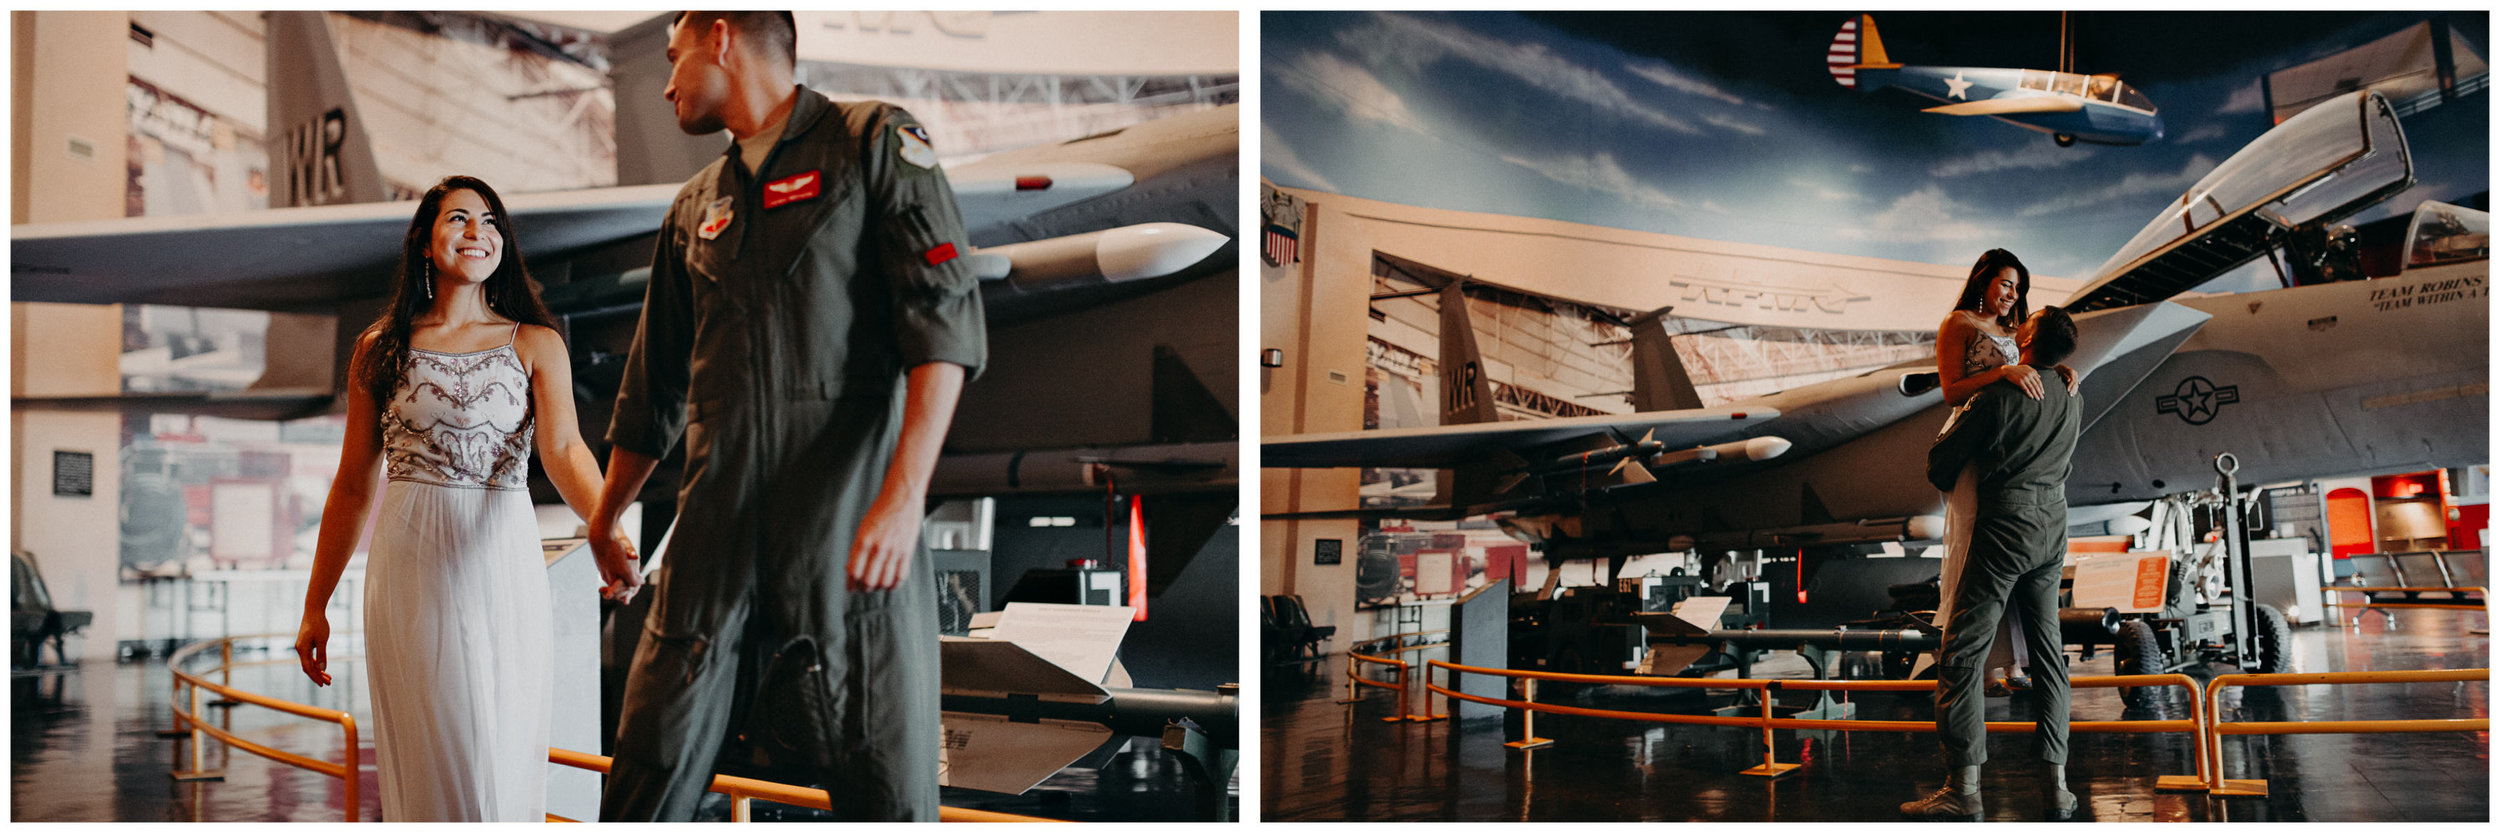 2 Museum of aviation engagement shoot - preview - Aline Marin Atlanta Photographer .jpg